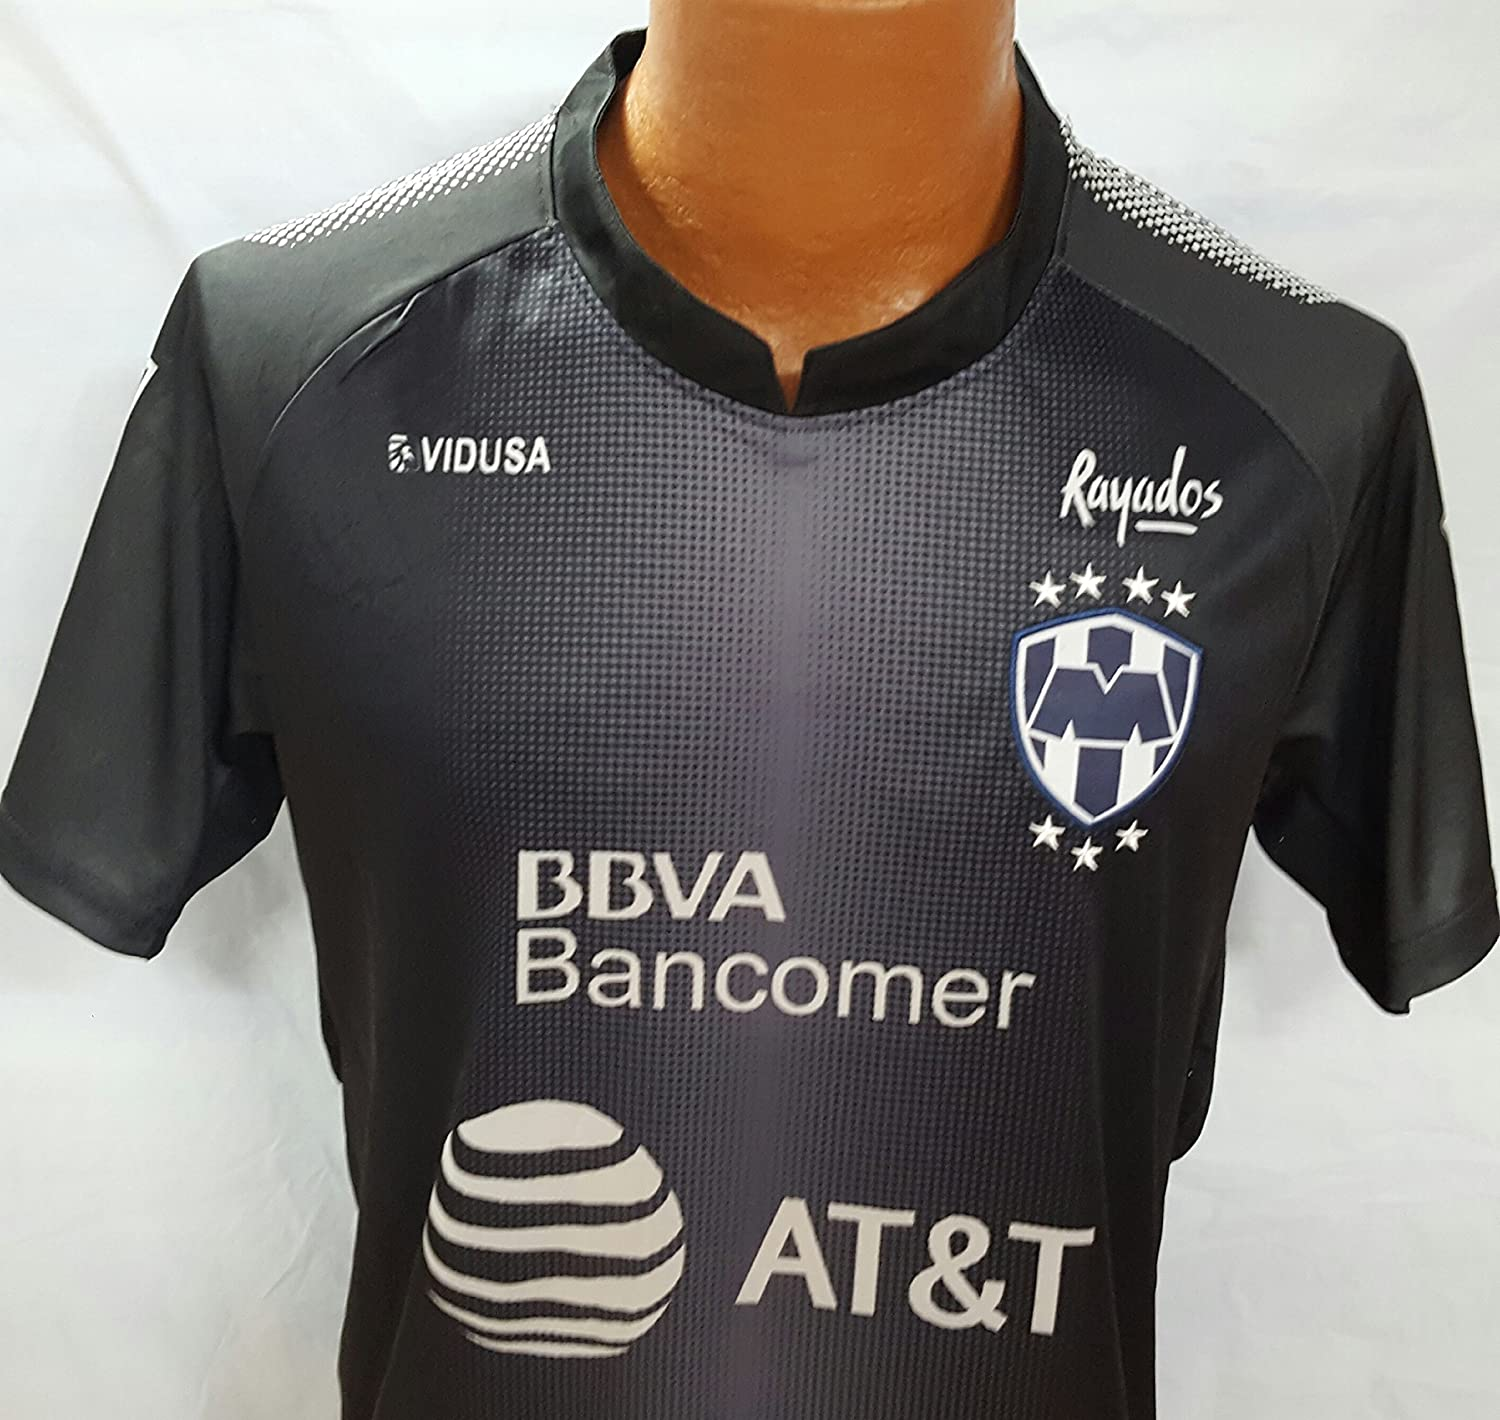 Amazon.com : New! Rayados de Monterrey Generic Replica Jersey Adult XLarge : Sports & Outdoors